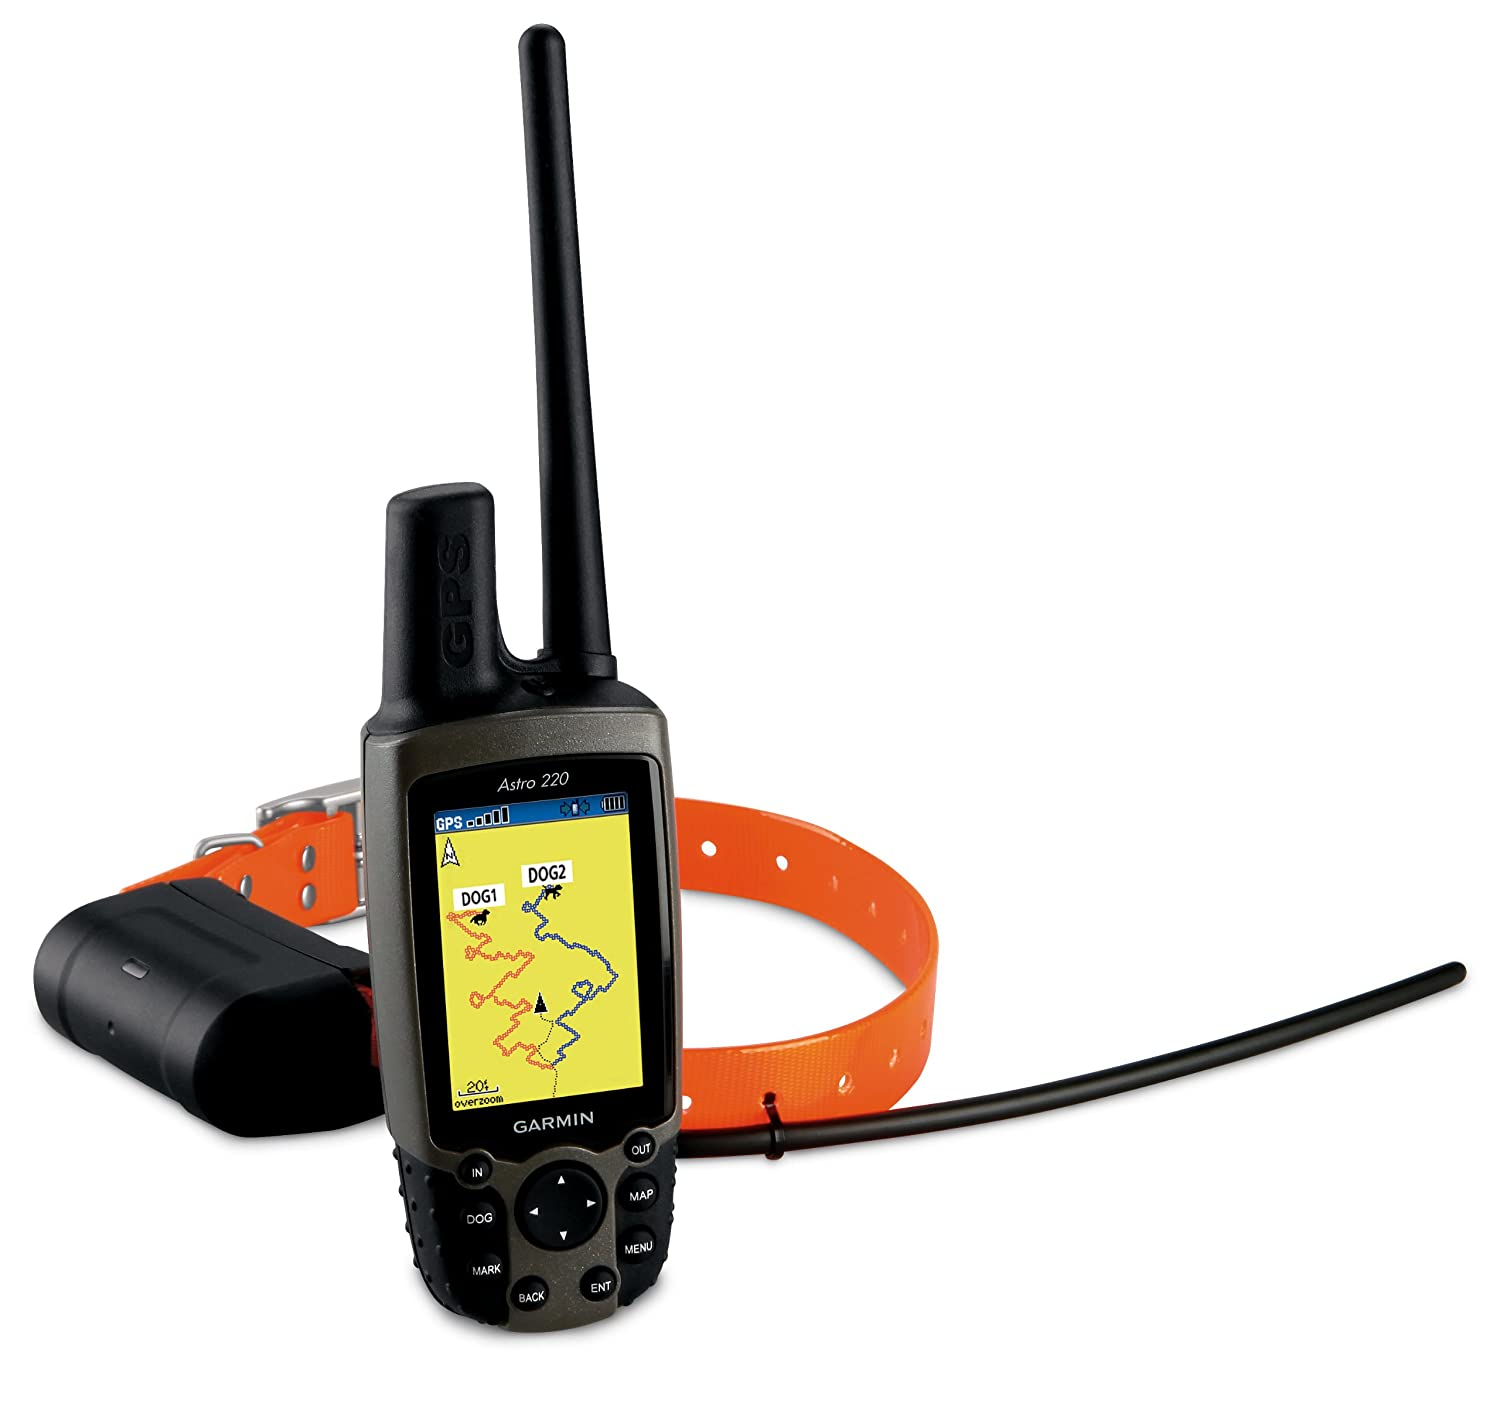 Garmin Tracking Transmitter Discontinued Manufacturer Image 1